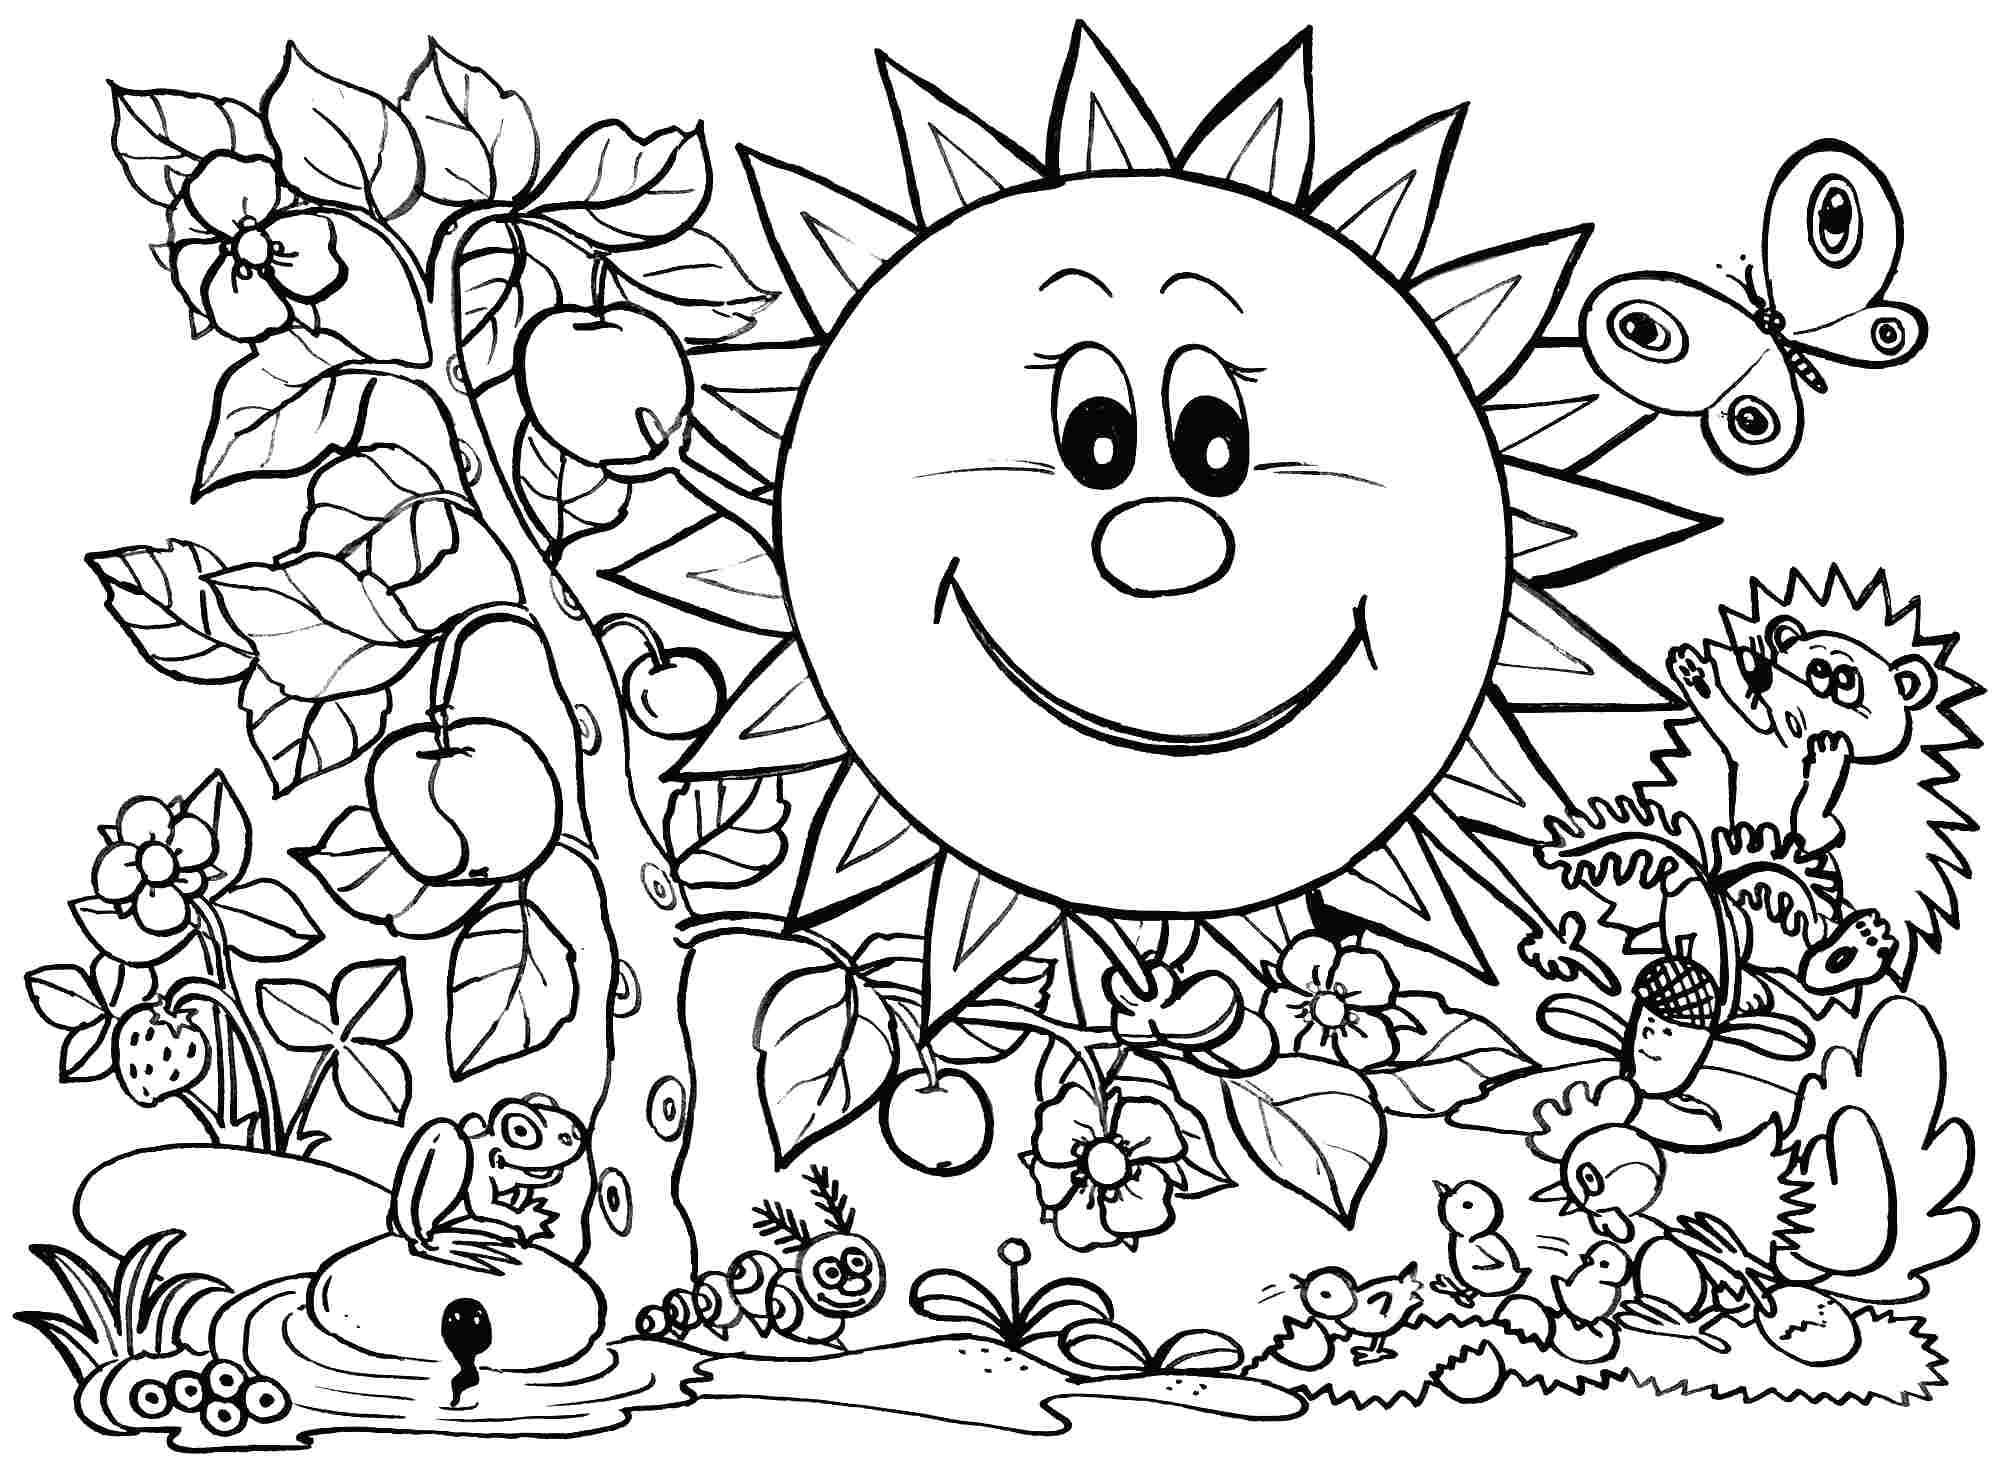 2000x1470 Toddler Coloring Pages Online For Preschoolers Simple Sheets